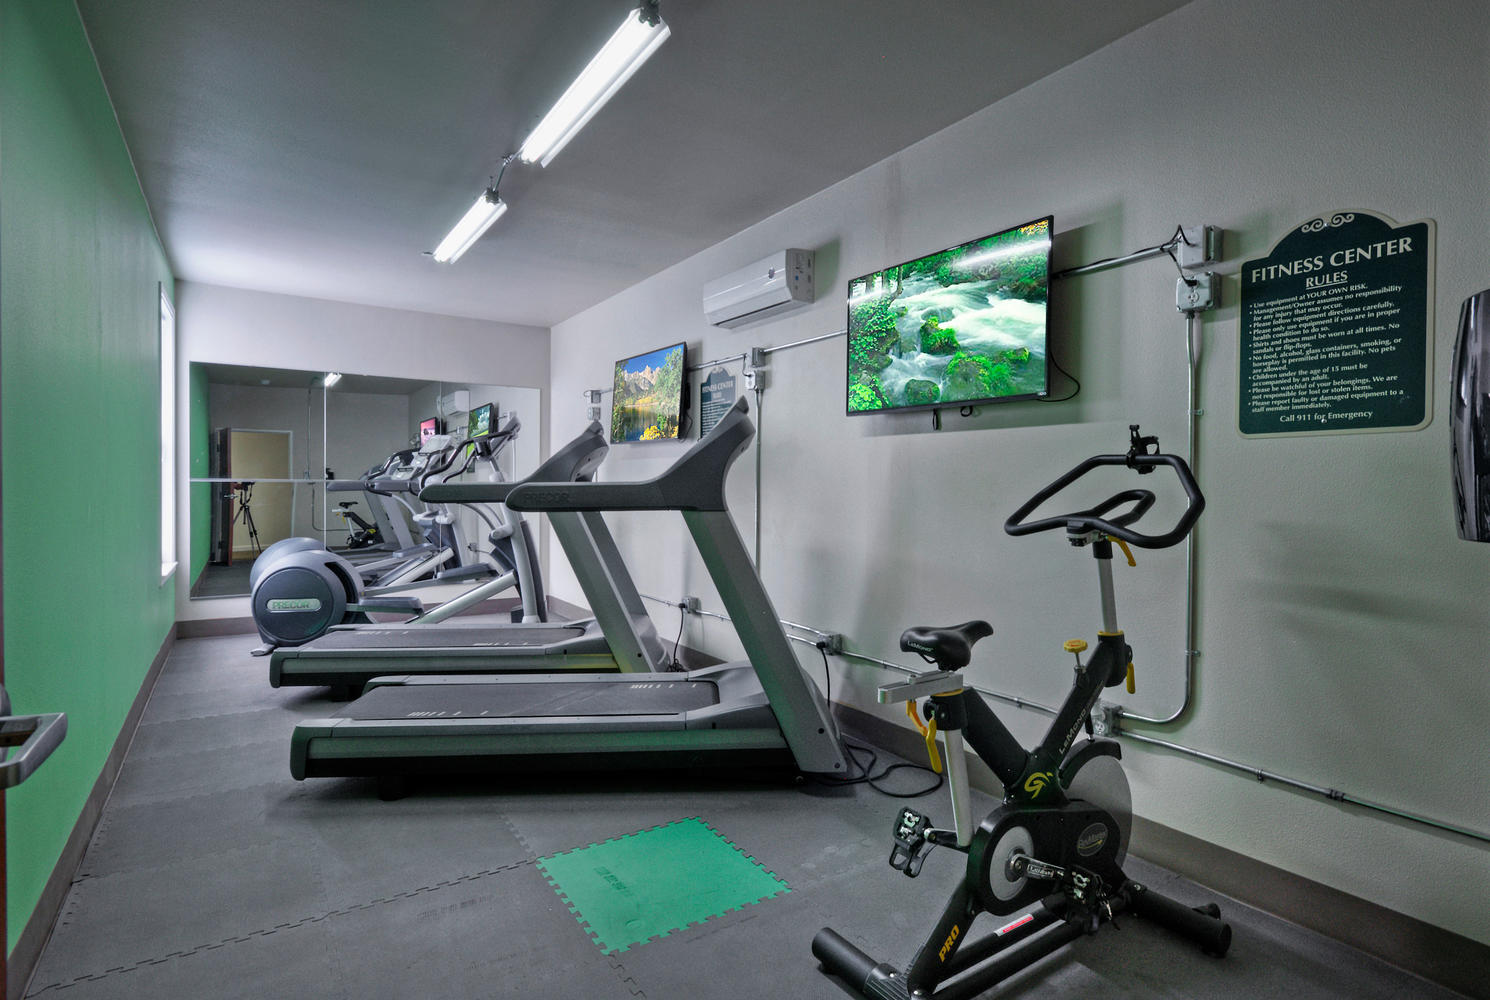 West Campus Lofts Fitness Center